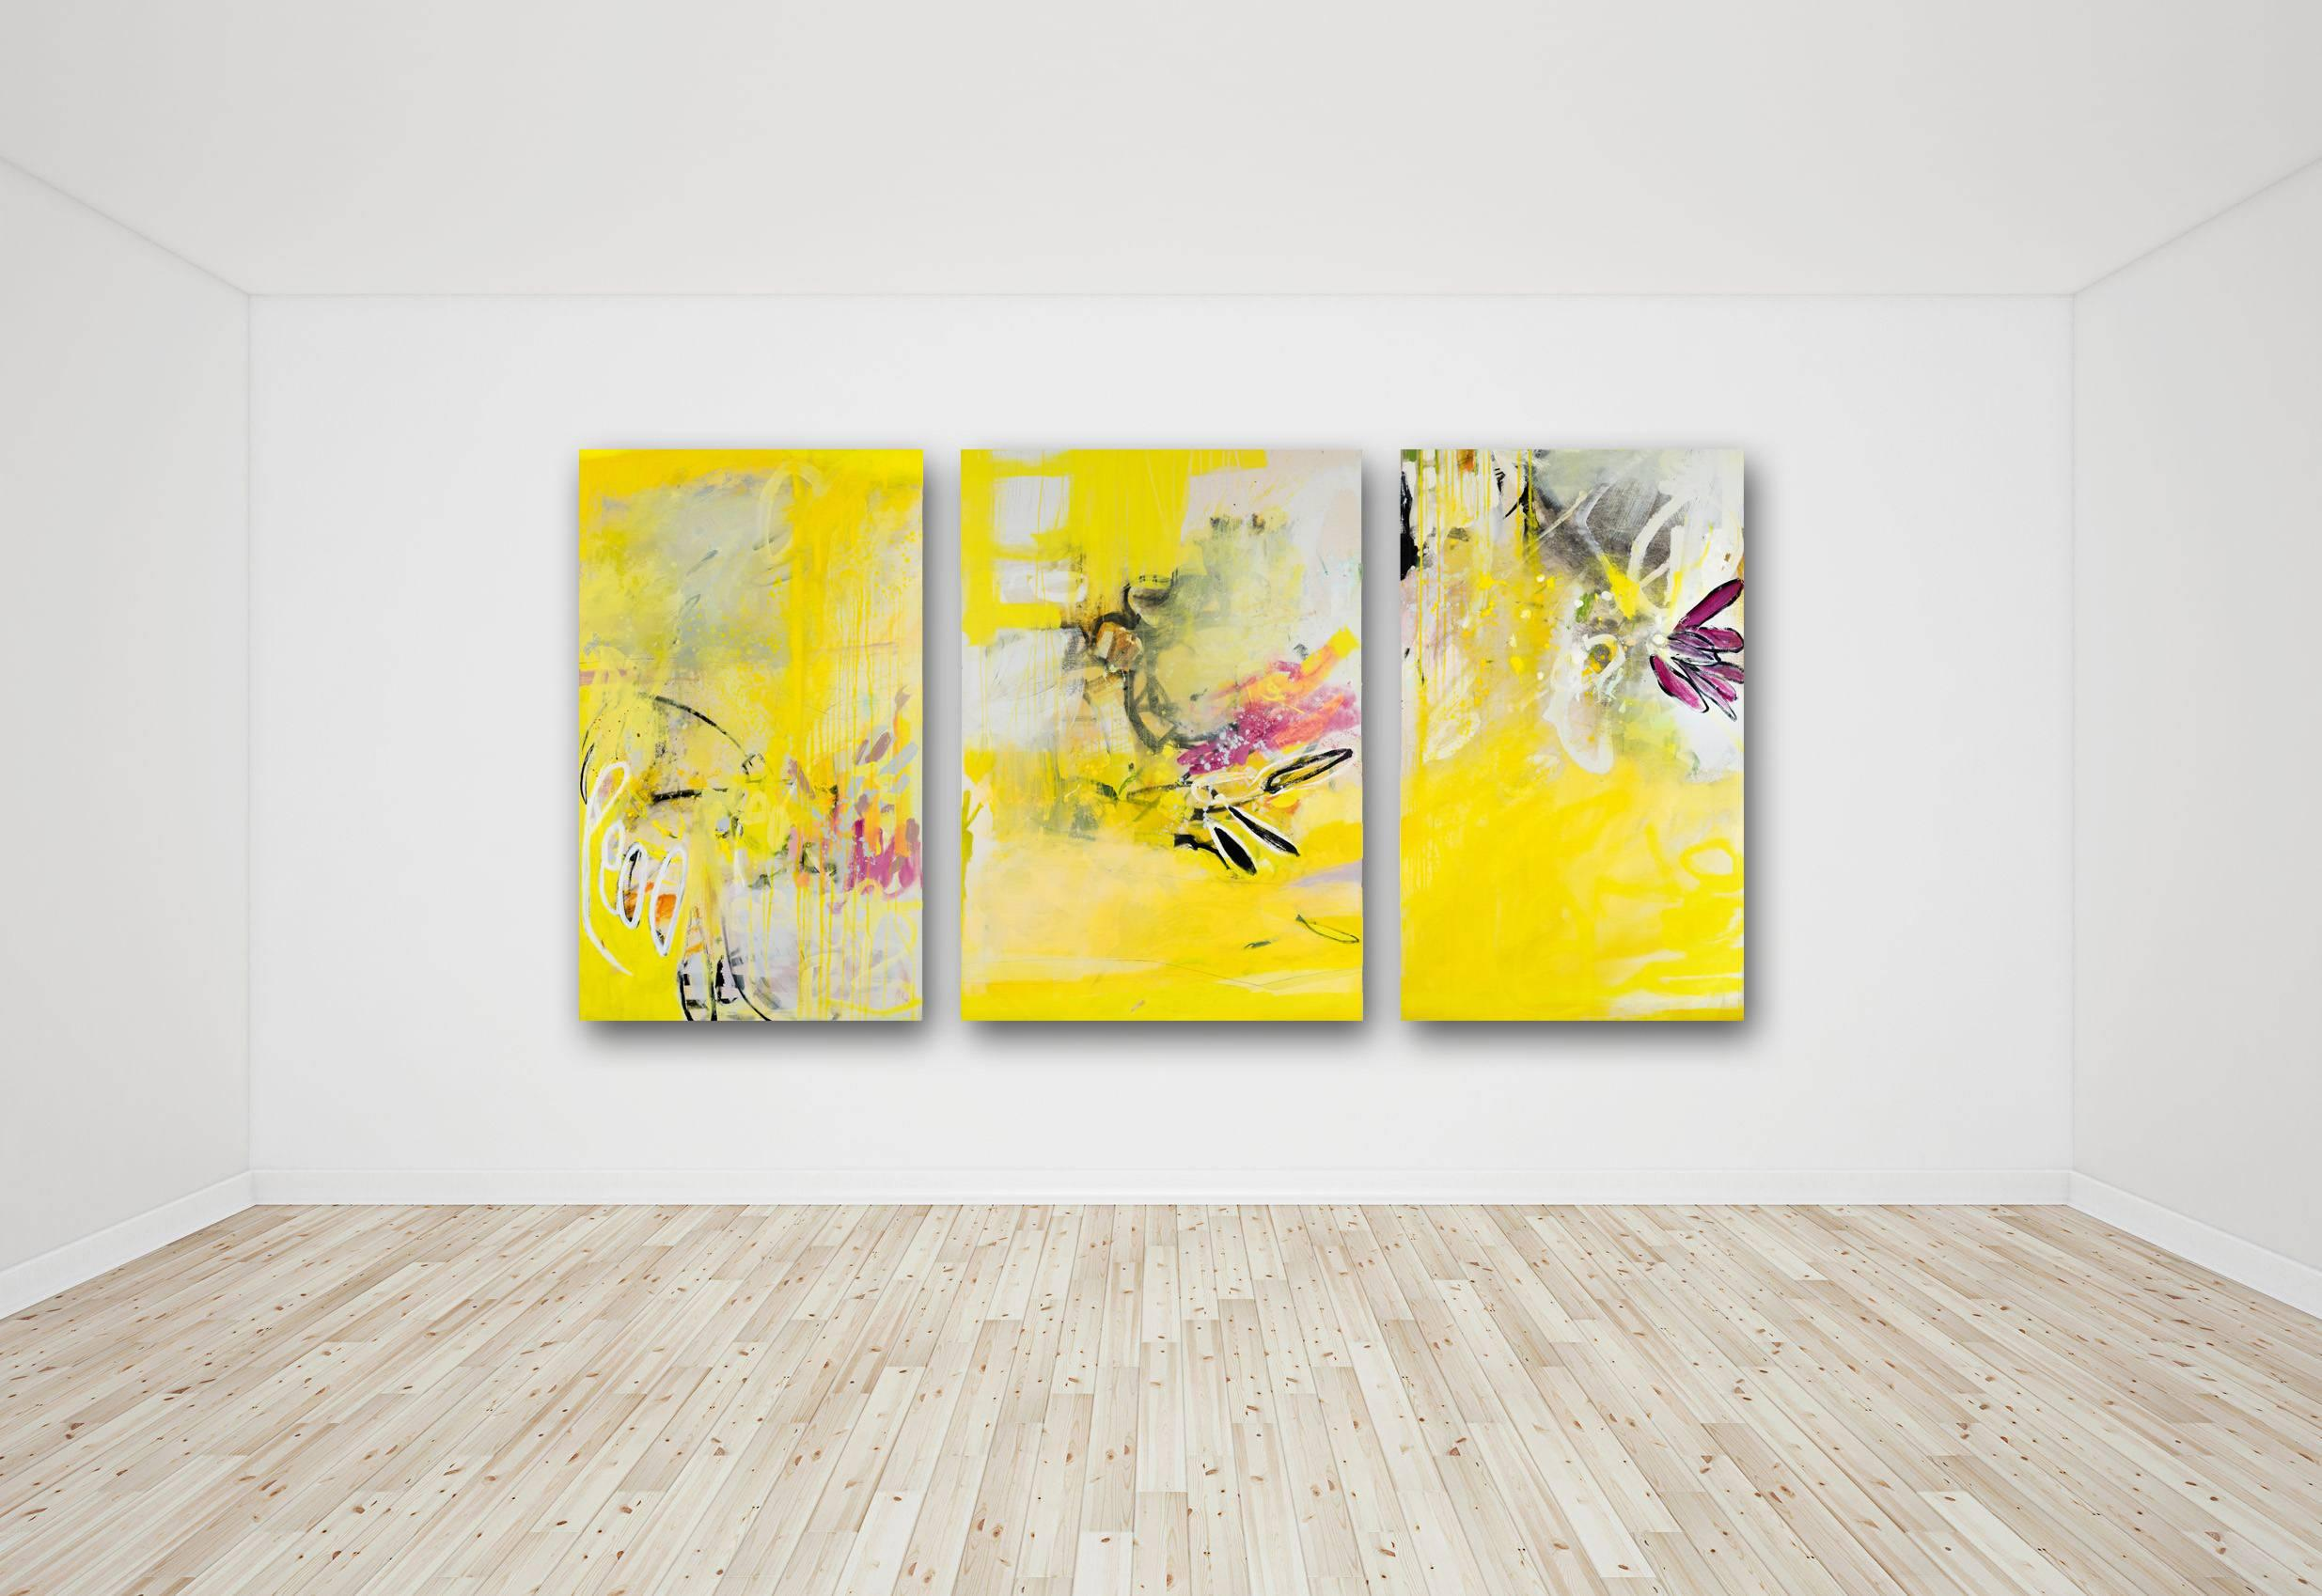 Breeze - large scale contemporary abstract mixed media artwork (triptych)